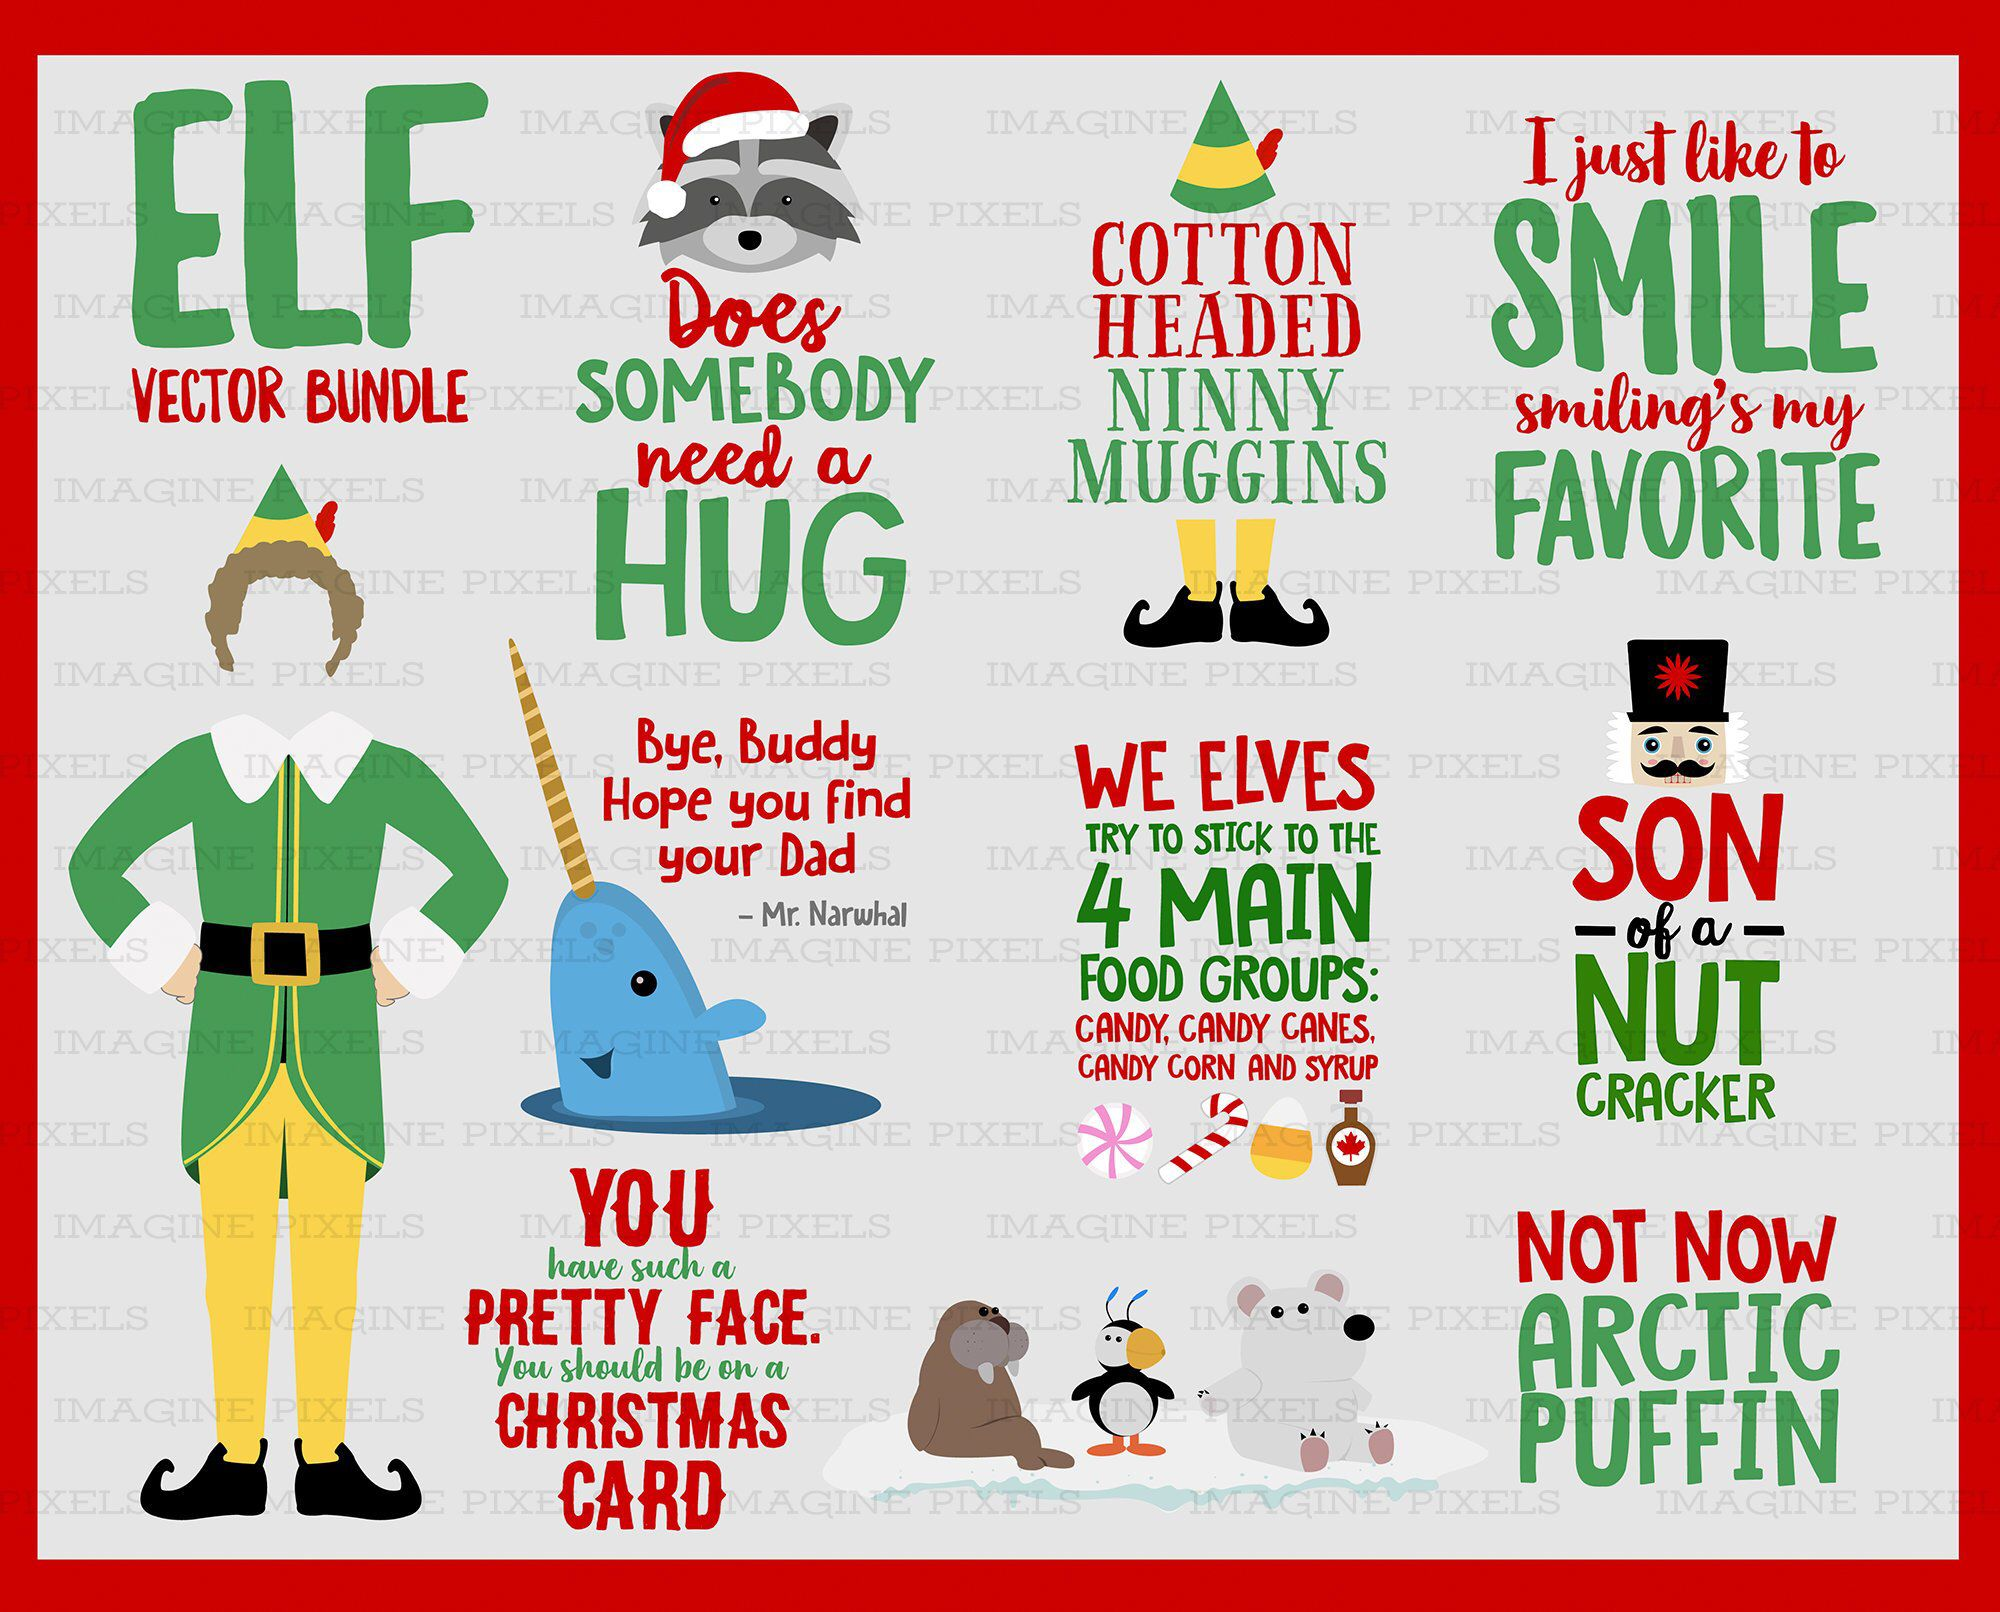 Elf Movie Quotes Image Bundle Download Svg Png Dxf Eps Ai Files Buddy Mr Narwhal Hat Legs Create Christmas Cards Tshirts Mugs Gift Tags In 2020 Elf Movie Elf Themed